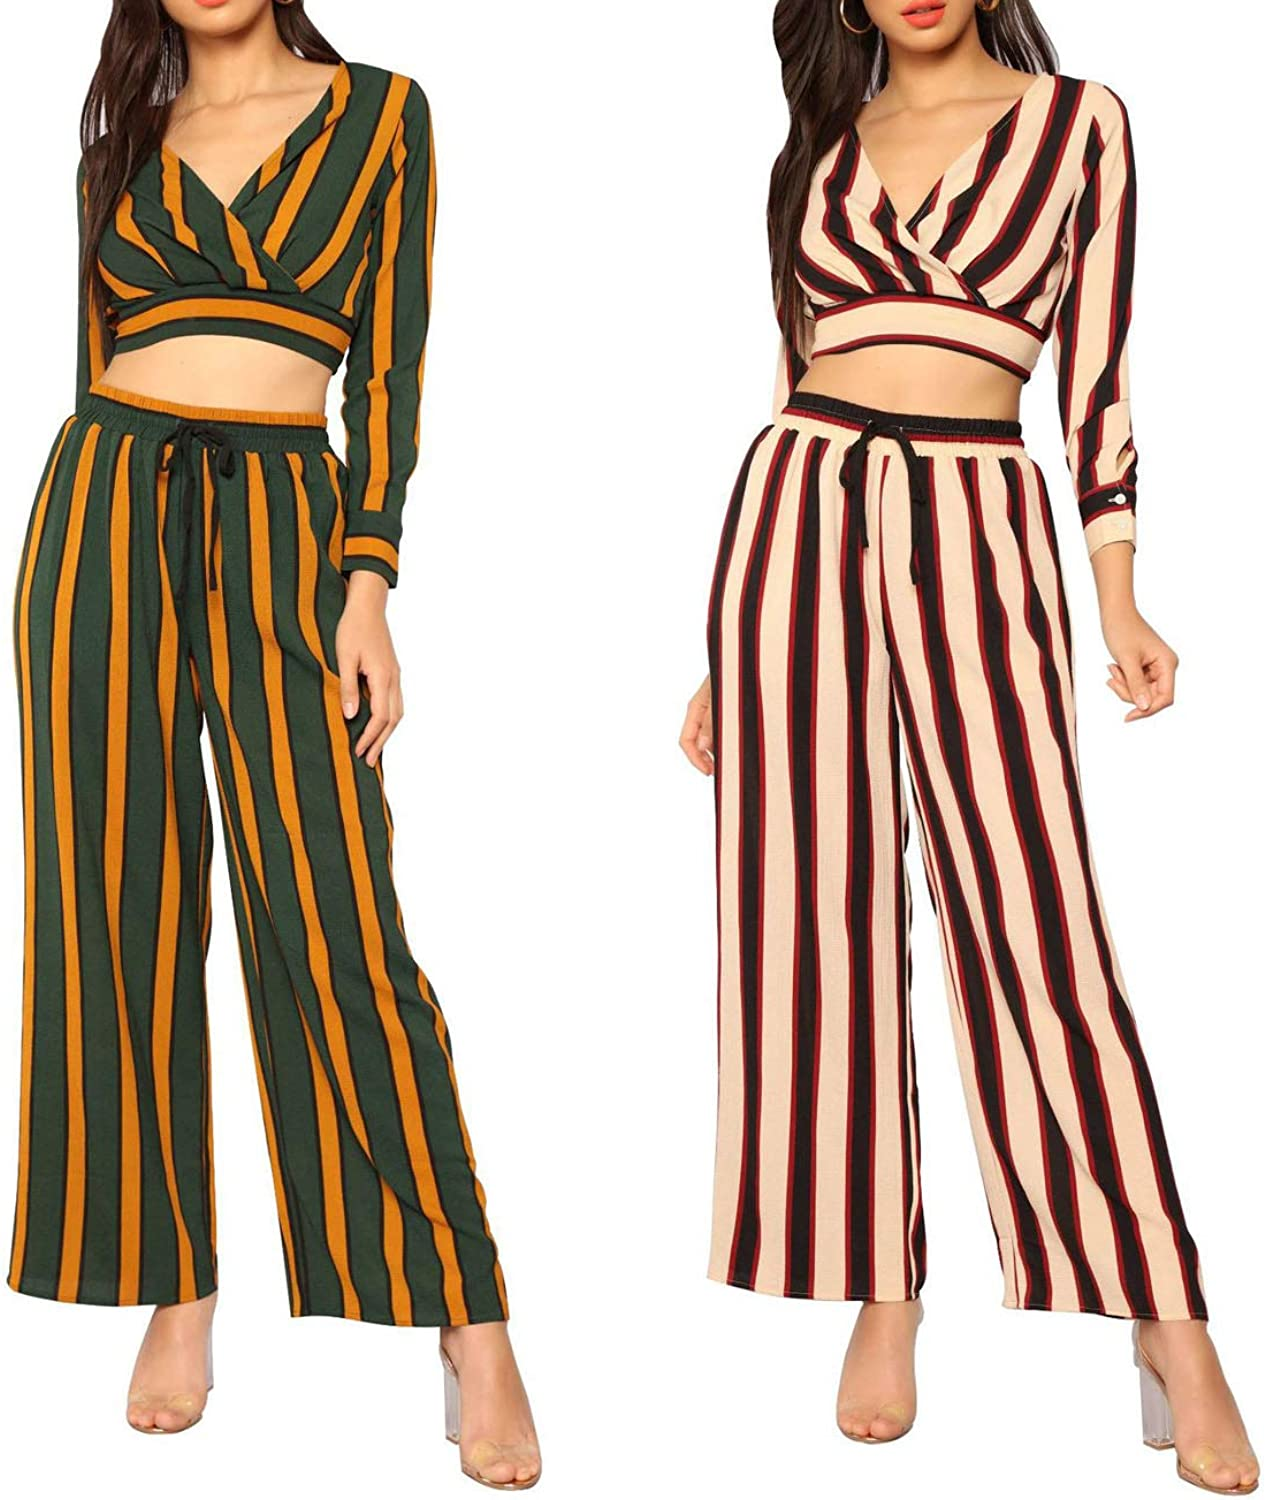 I'll NEVER BE HER hot Fashion Ladies hit Stripes VNeck Exposed Umbilical Shirt WideLeg Pants